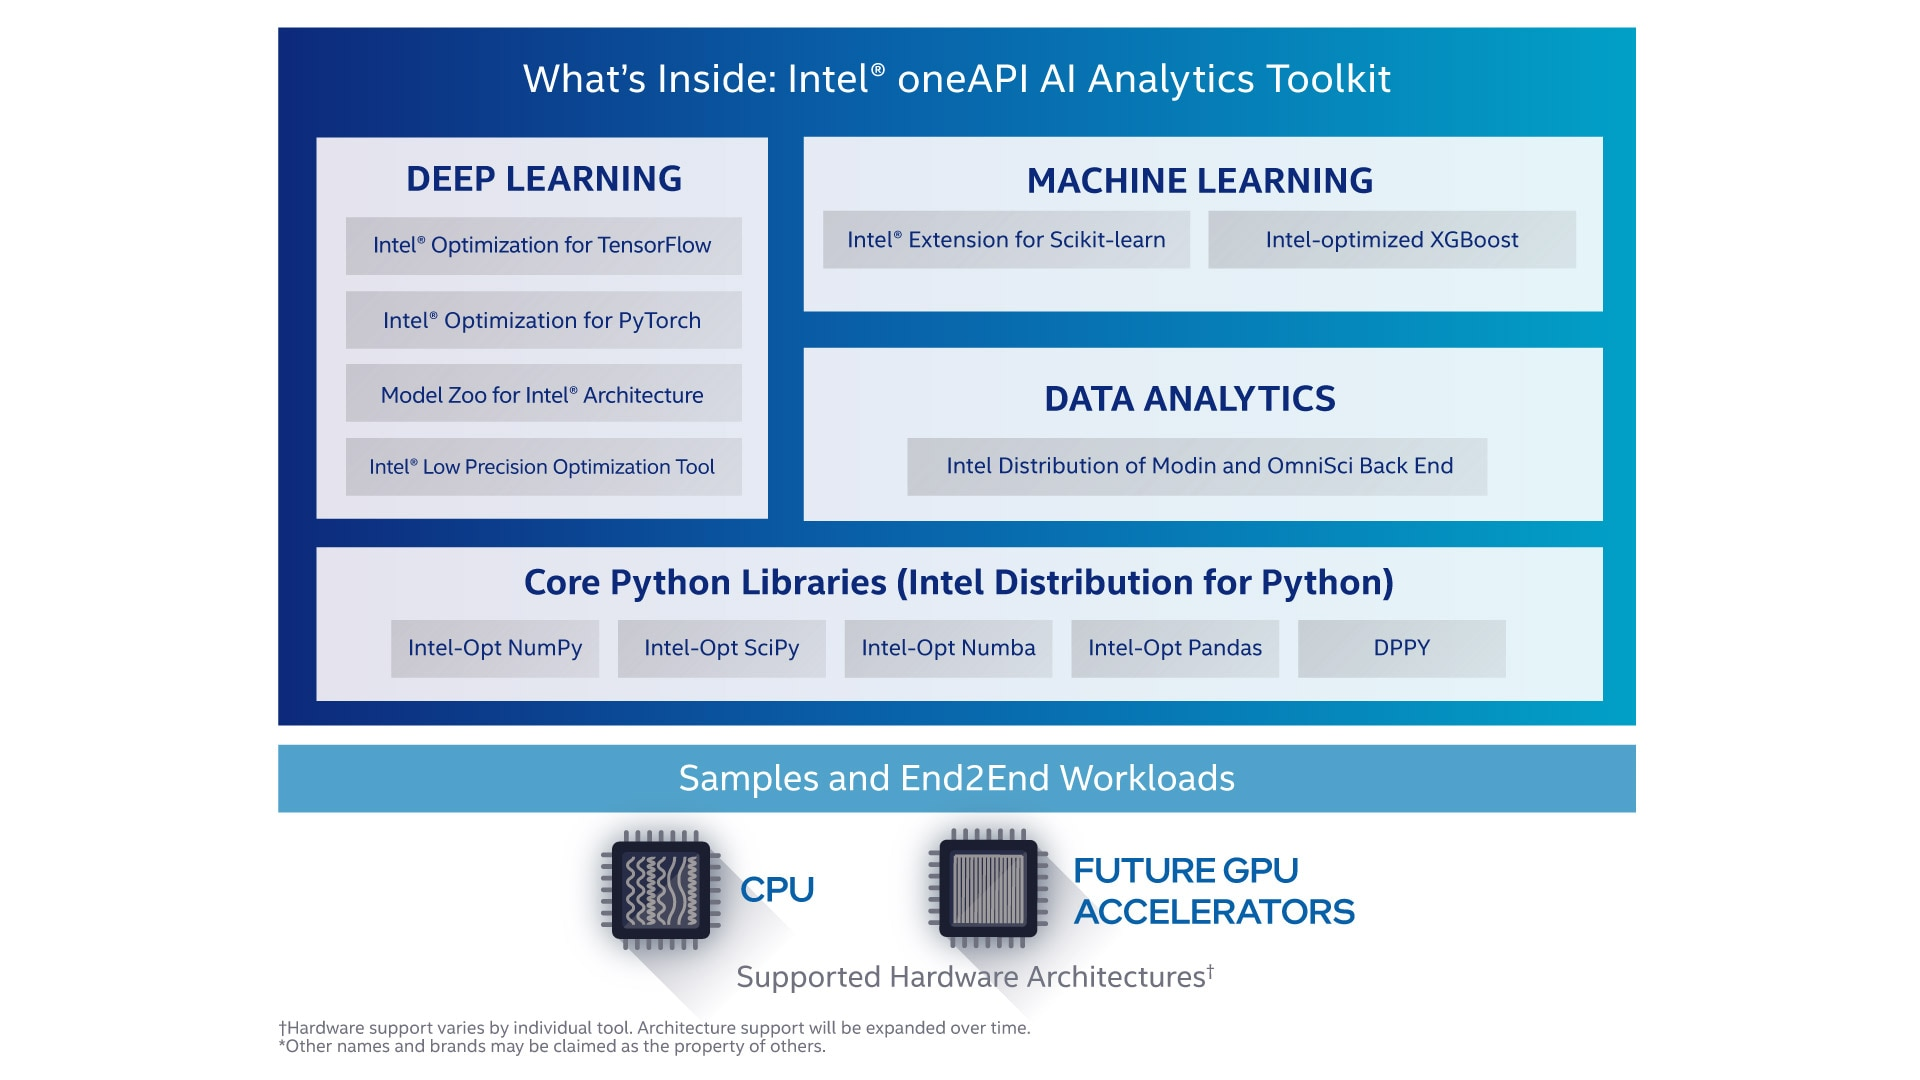 Components of Intel oneAPI AI Analytics Toolkit for End-to-end DataScience and Machine Learning Acceleration